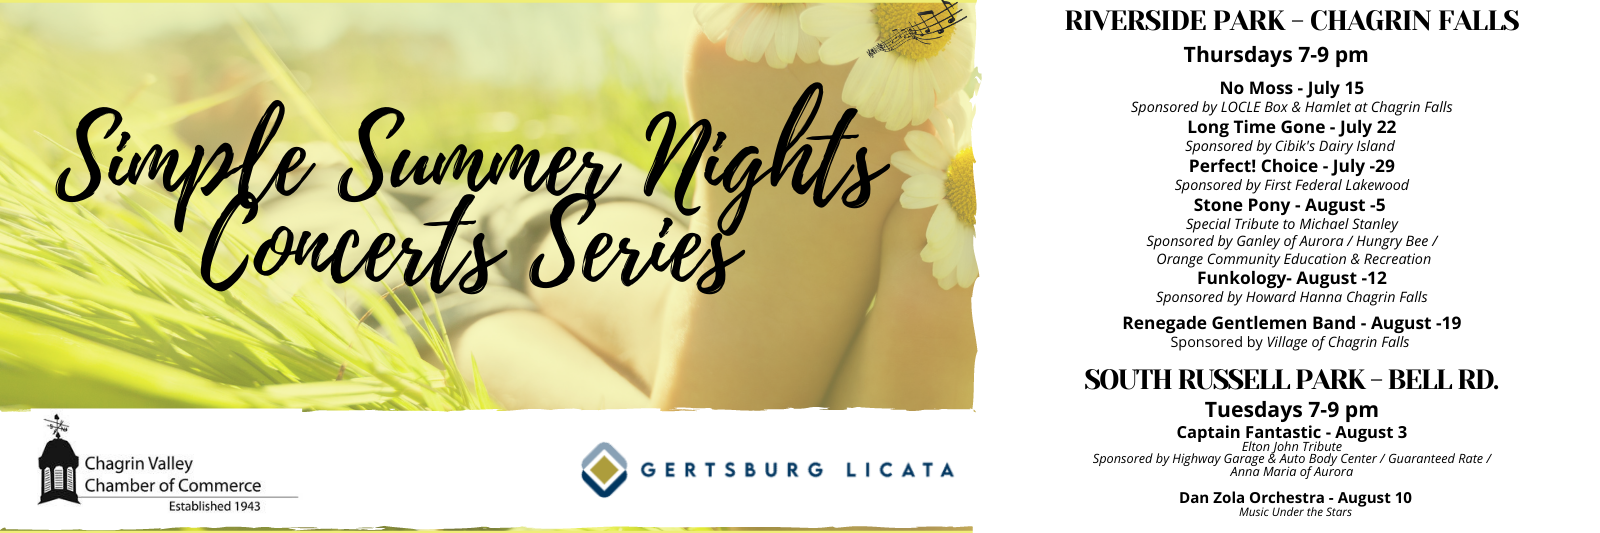 Simple-Summer-Nights-Concerts-Series-Web-banner.png